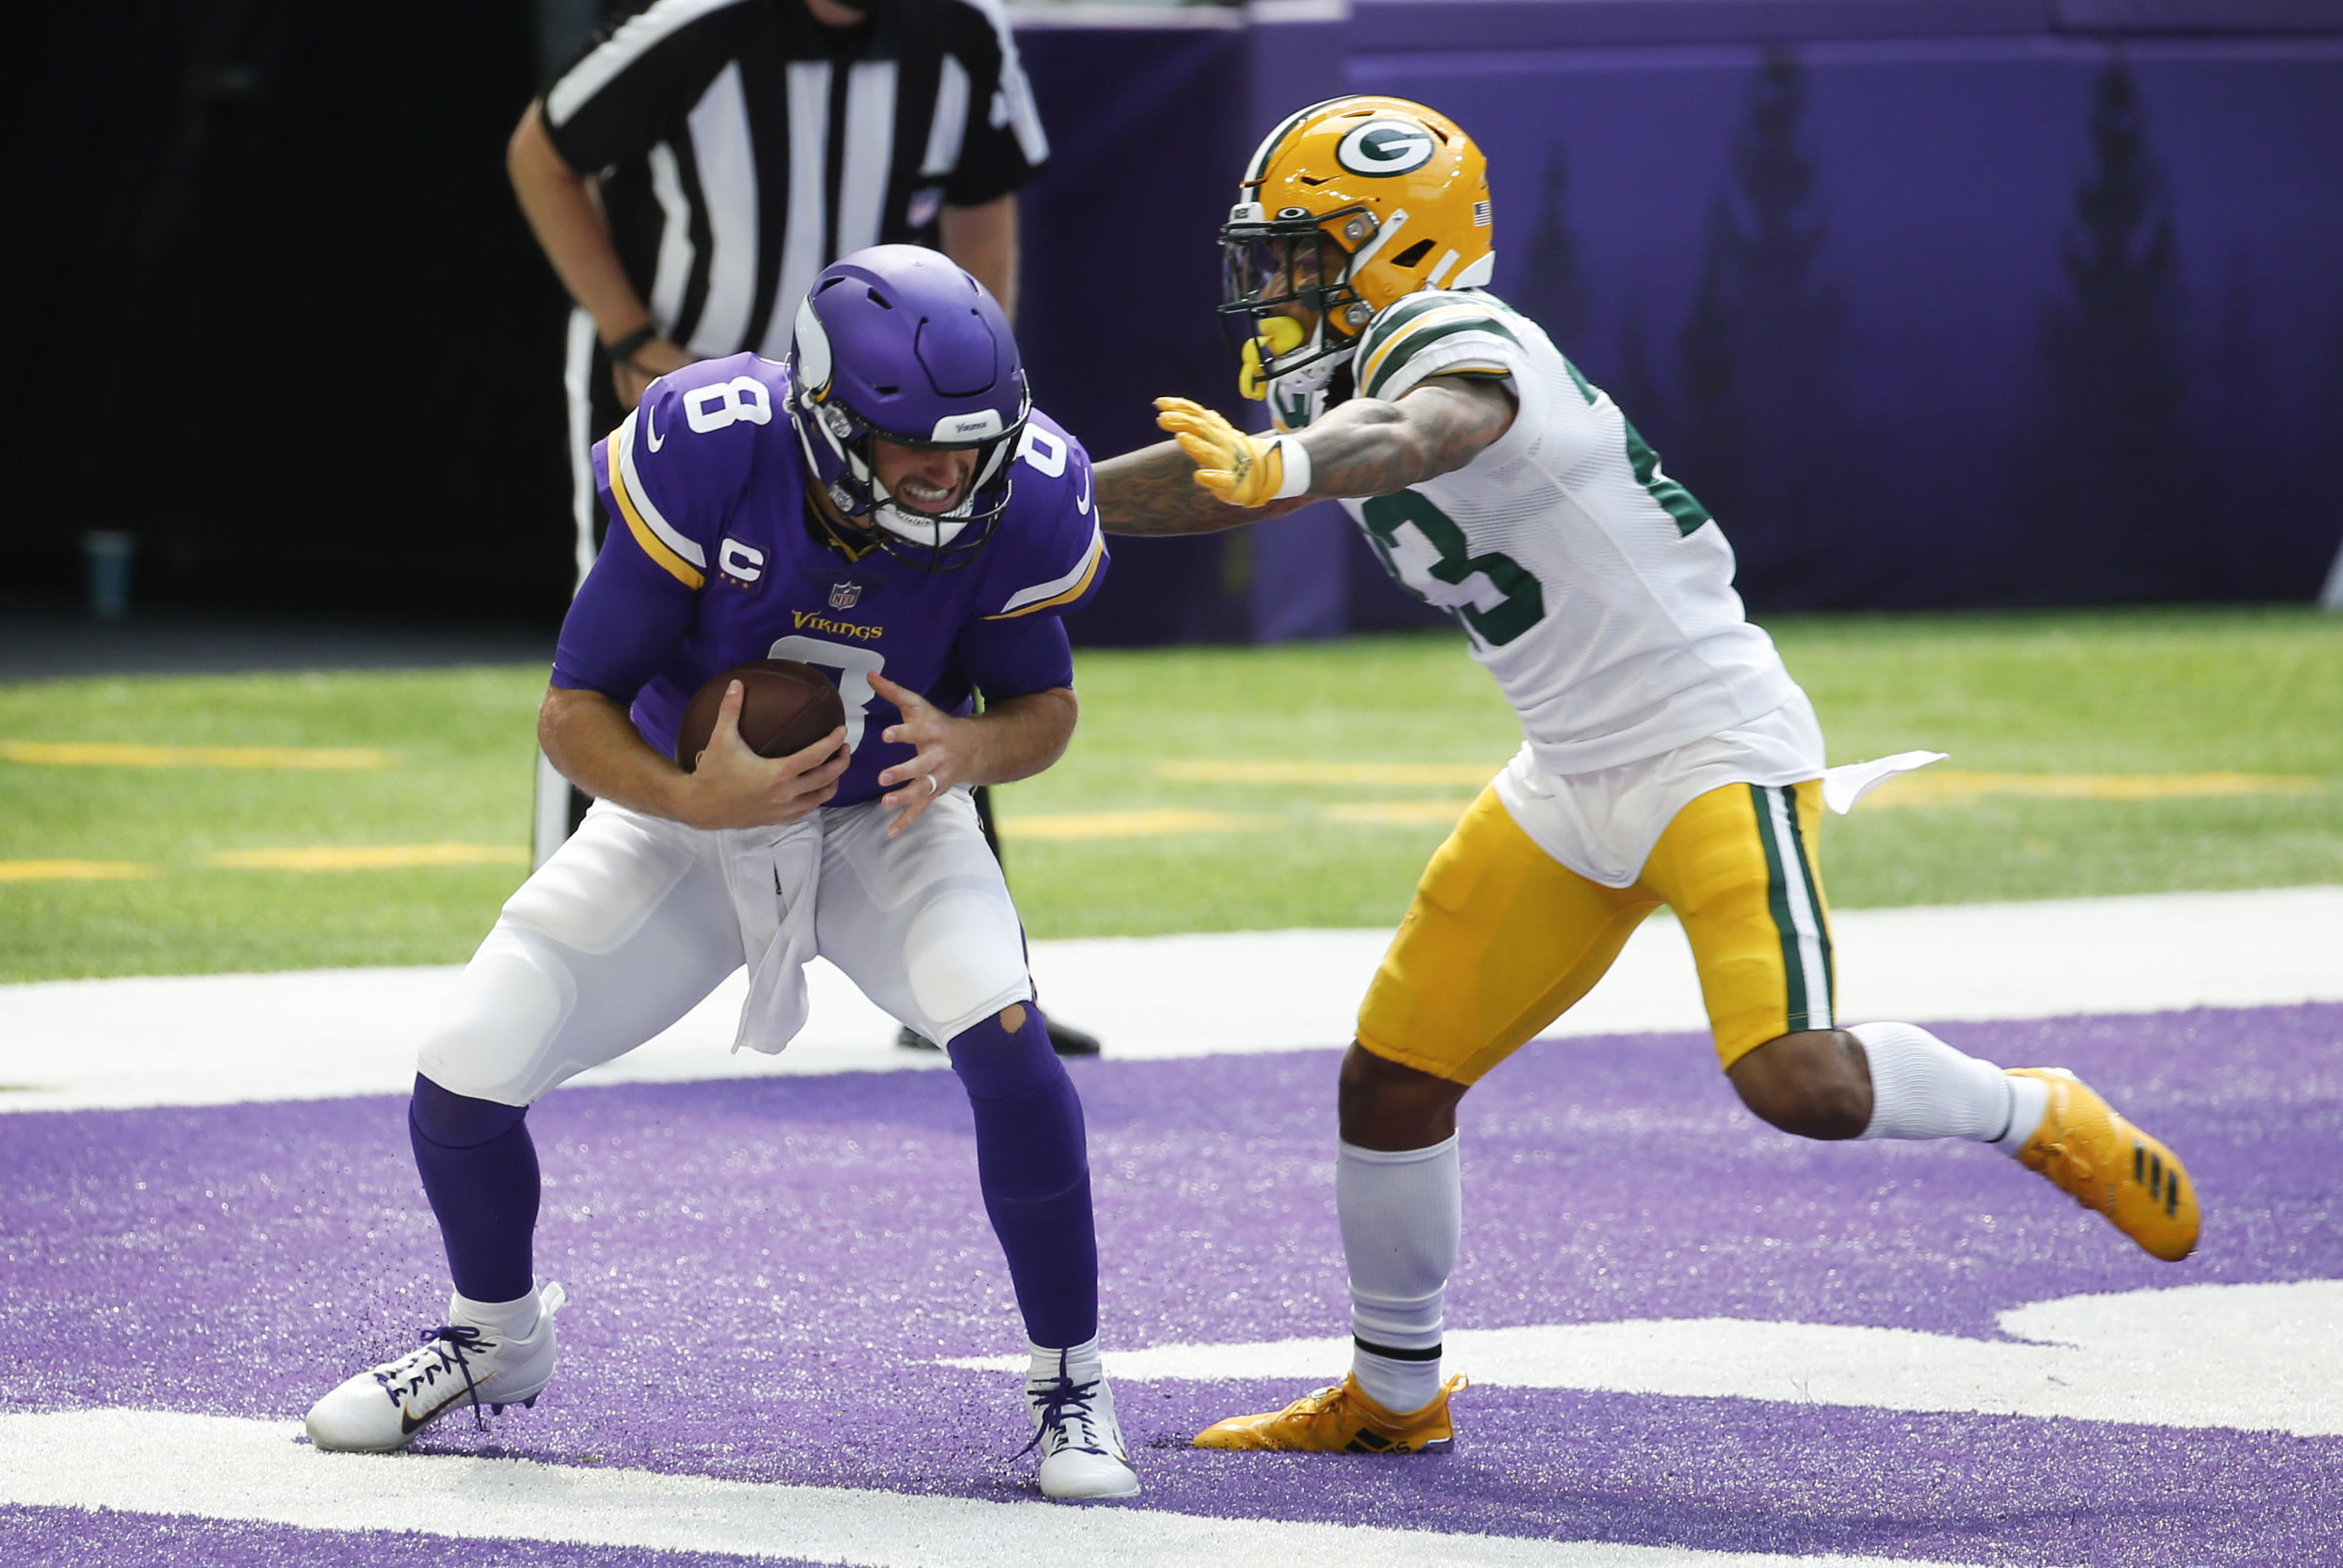 Green Bay Packers cornerback Jaire Alexander tackles Minnesota Vikings quarterback Kirk Cousins (8) in the end zone for a safety during the first half of an NFL football game, Sunday, Sept. 13, 2020, in Minneapolis. (AP Photo/Bruce Kluckhohn)